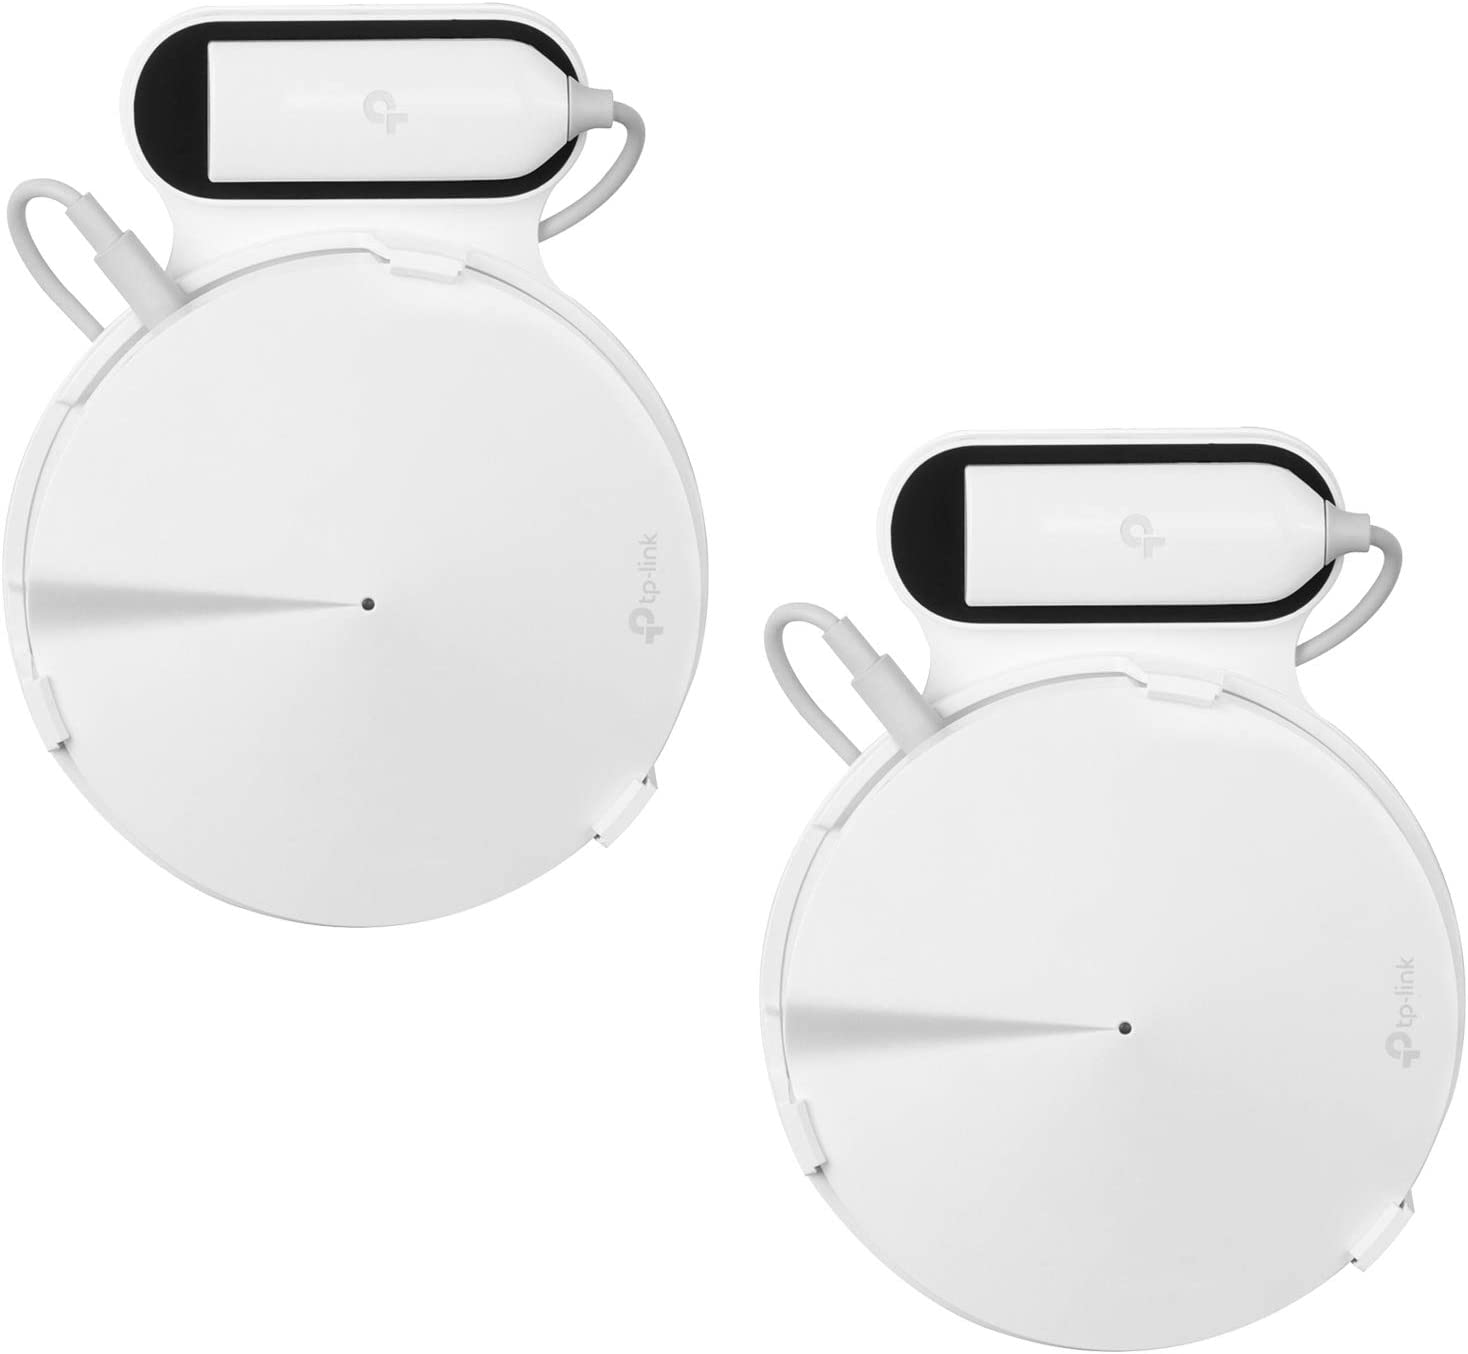 TIUIHU Outlet Holder Mount for TP-Link Deco Mesh WiFi System(Deco M5) - No Cord Clutter and Save Space Deco M5 Router Bracket (2-Pack)